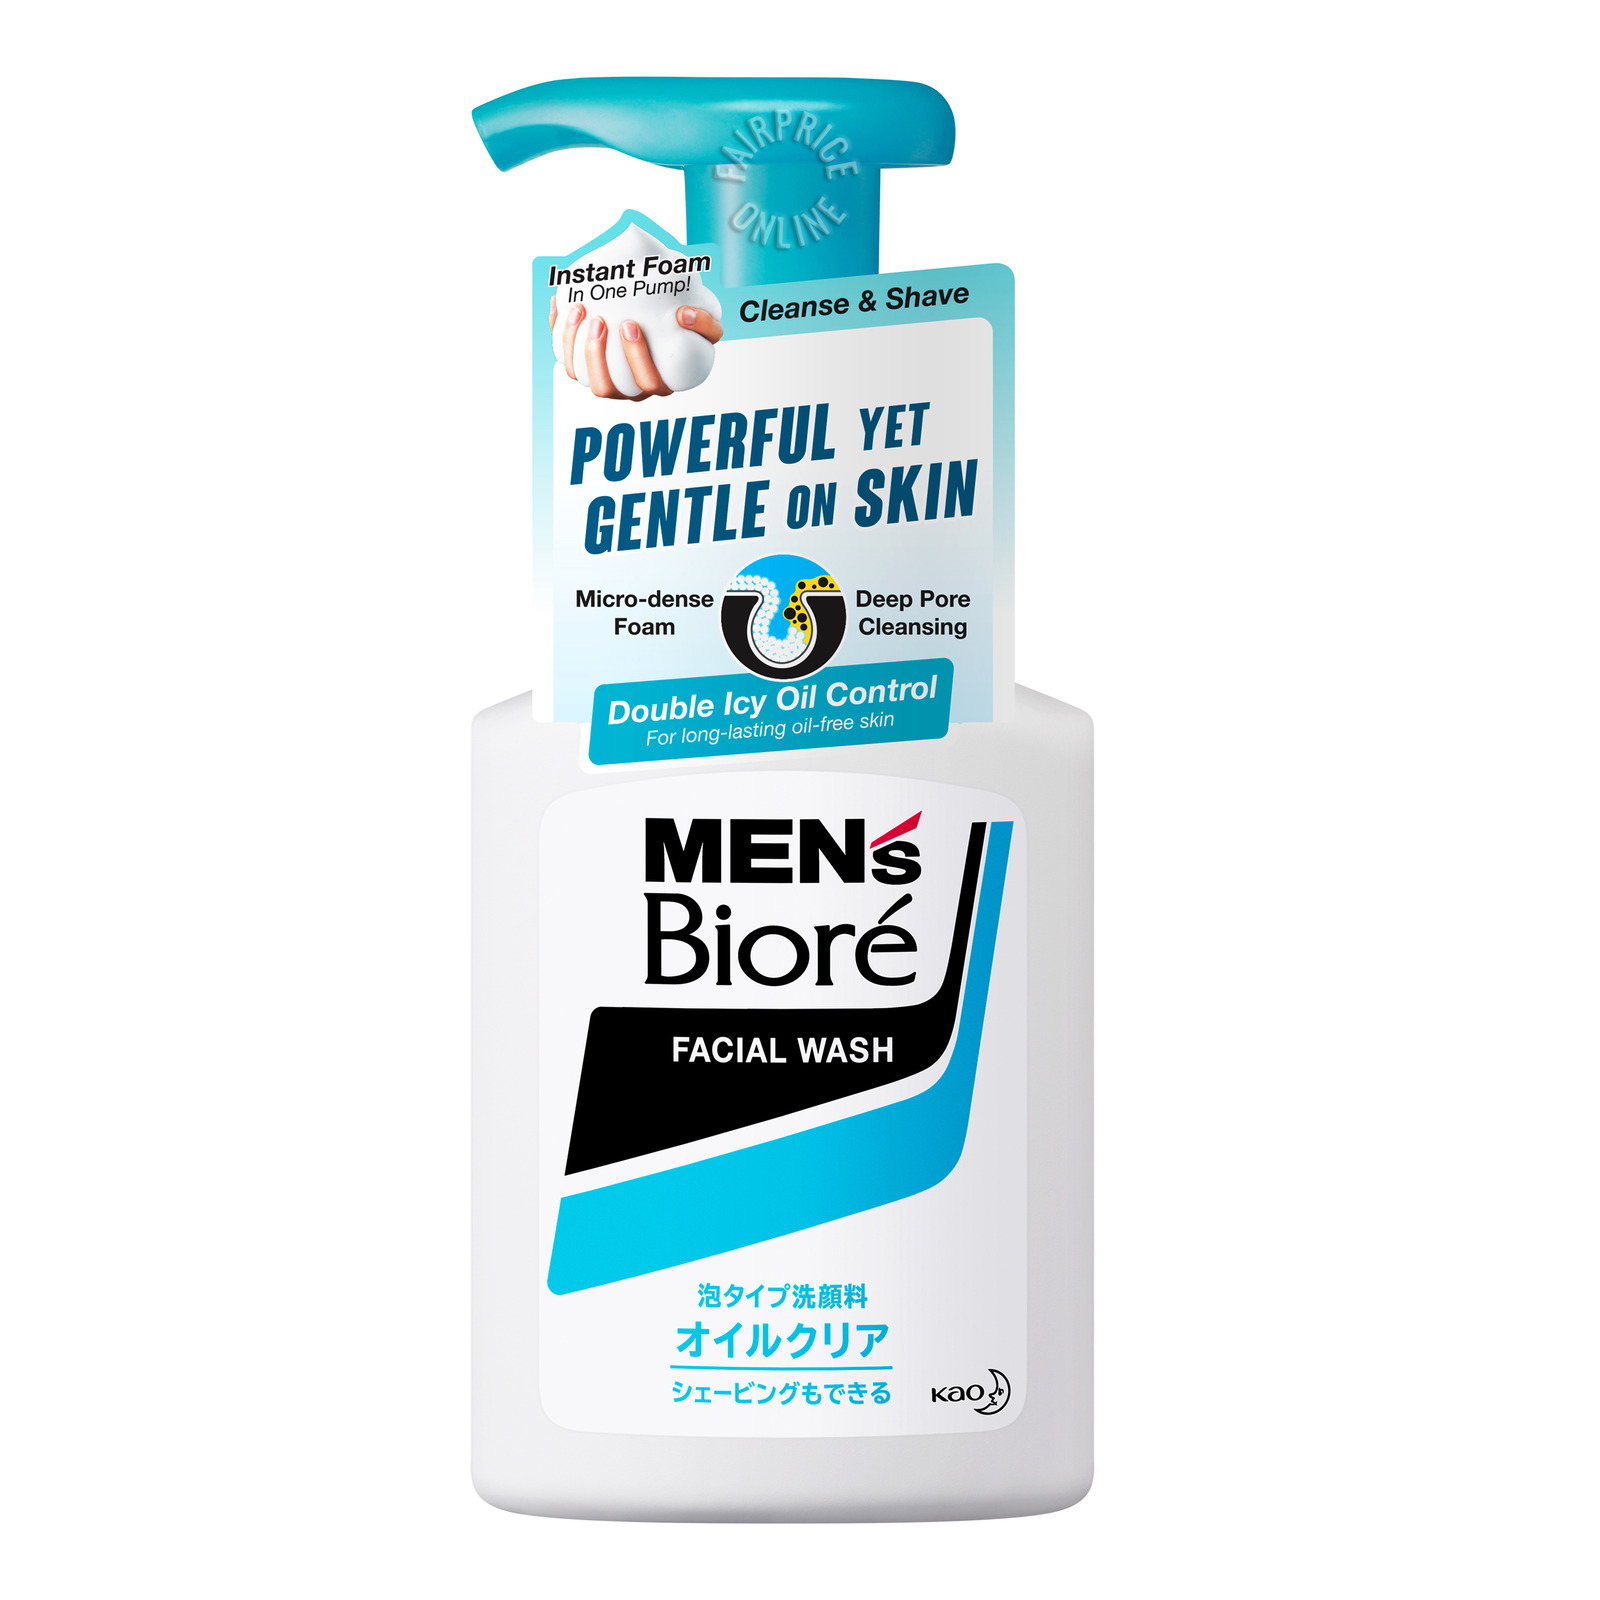 Biore Men's Instant Foaming Facial Wash - Double Oil Control